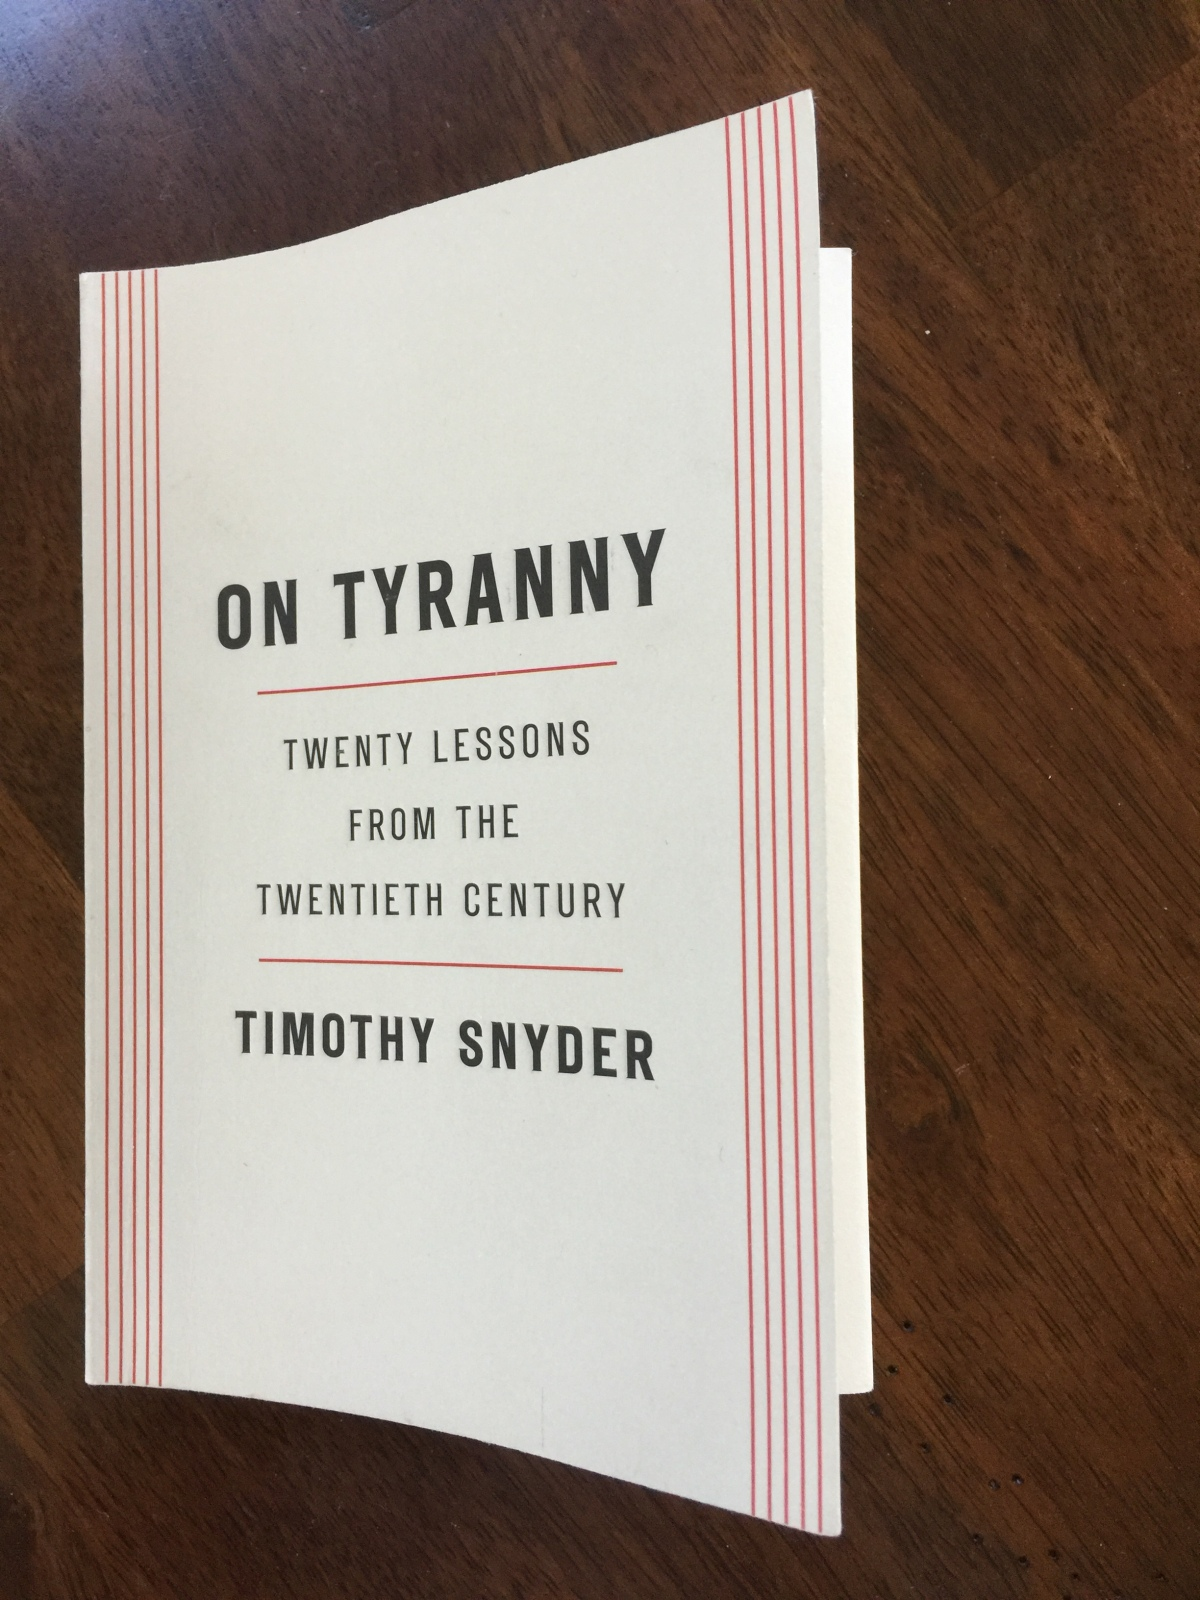 On Tyranny – Twenty Lessons from the Twentieth Century by Timothy Snyder